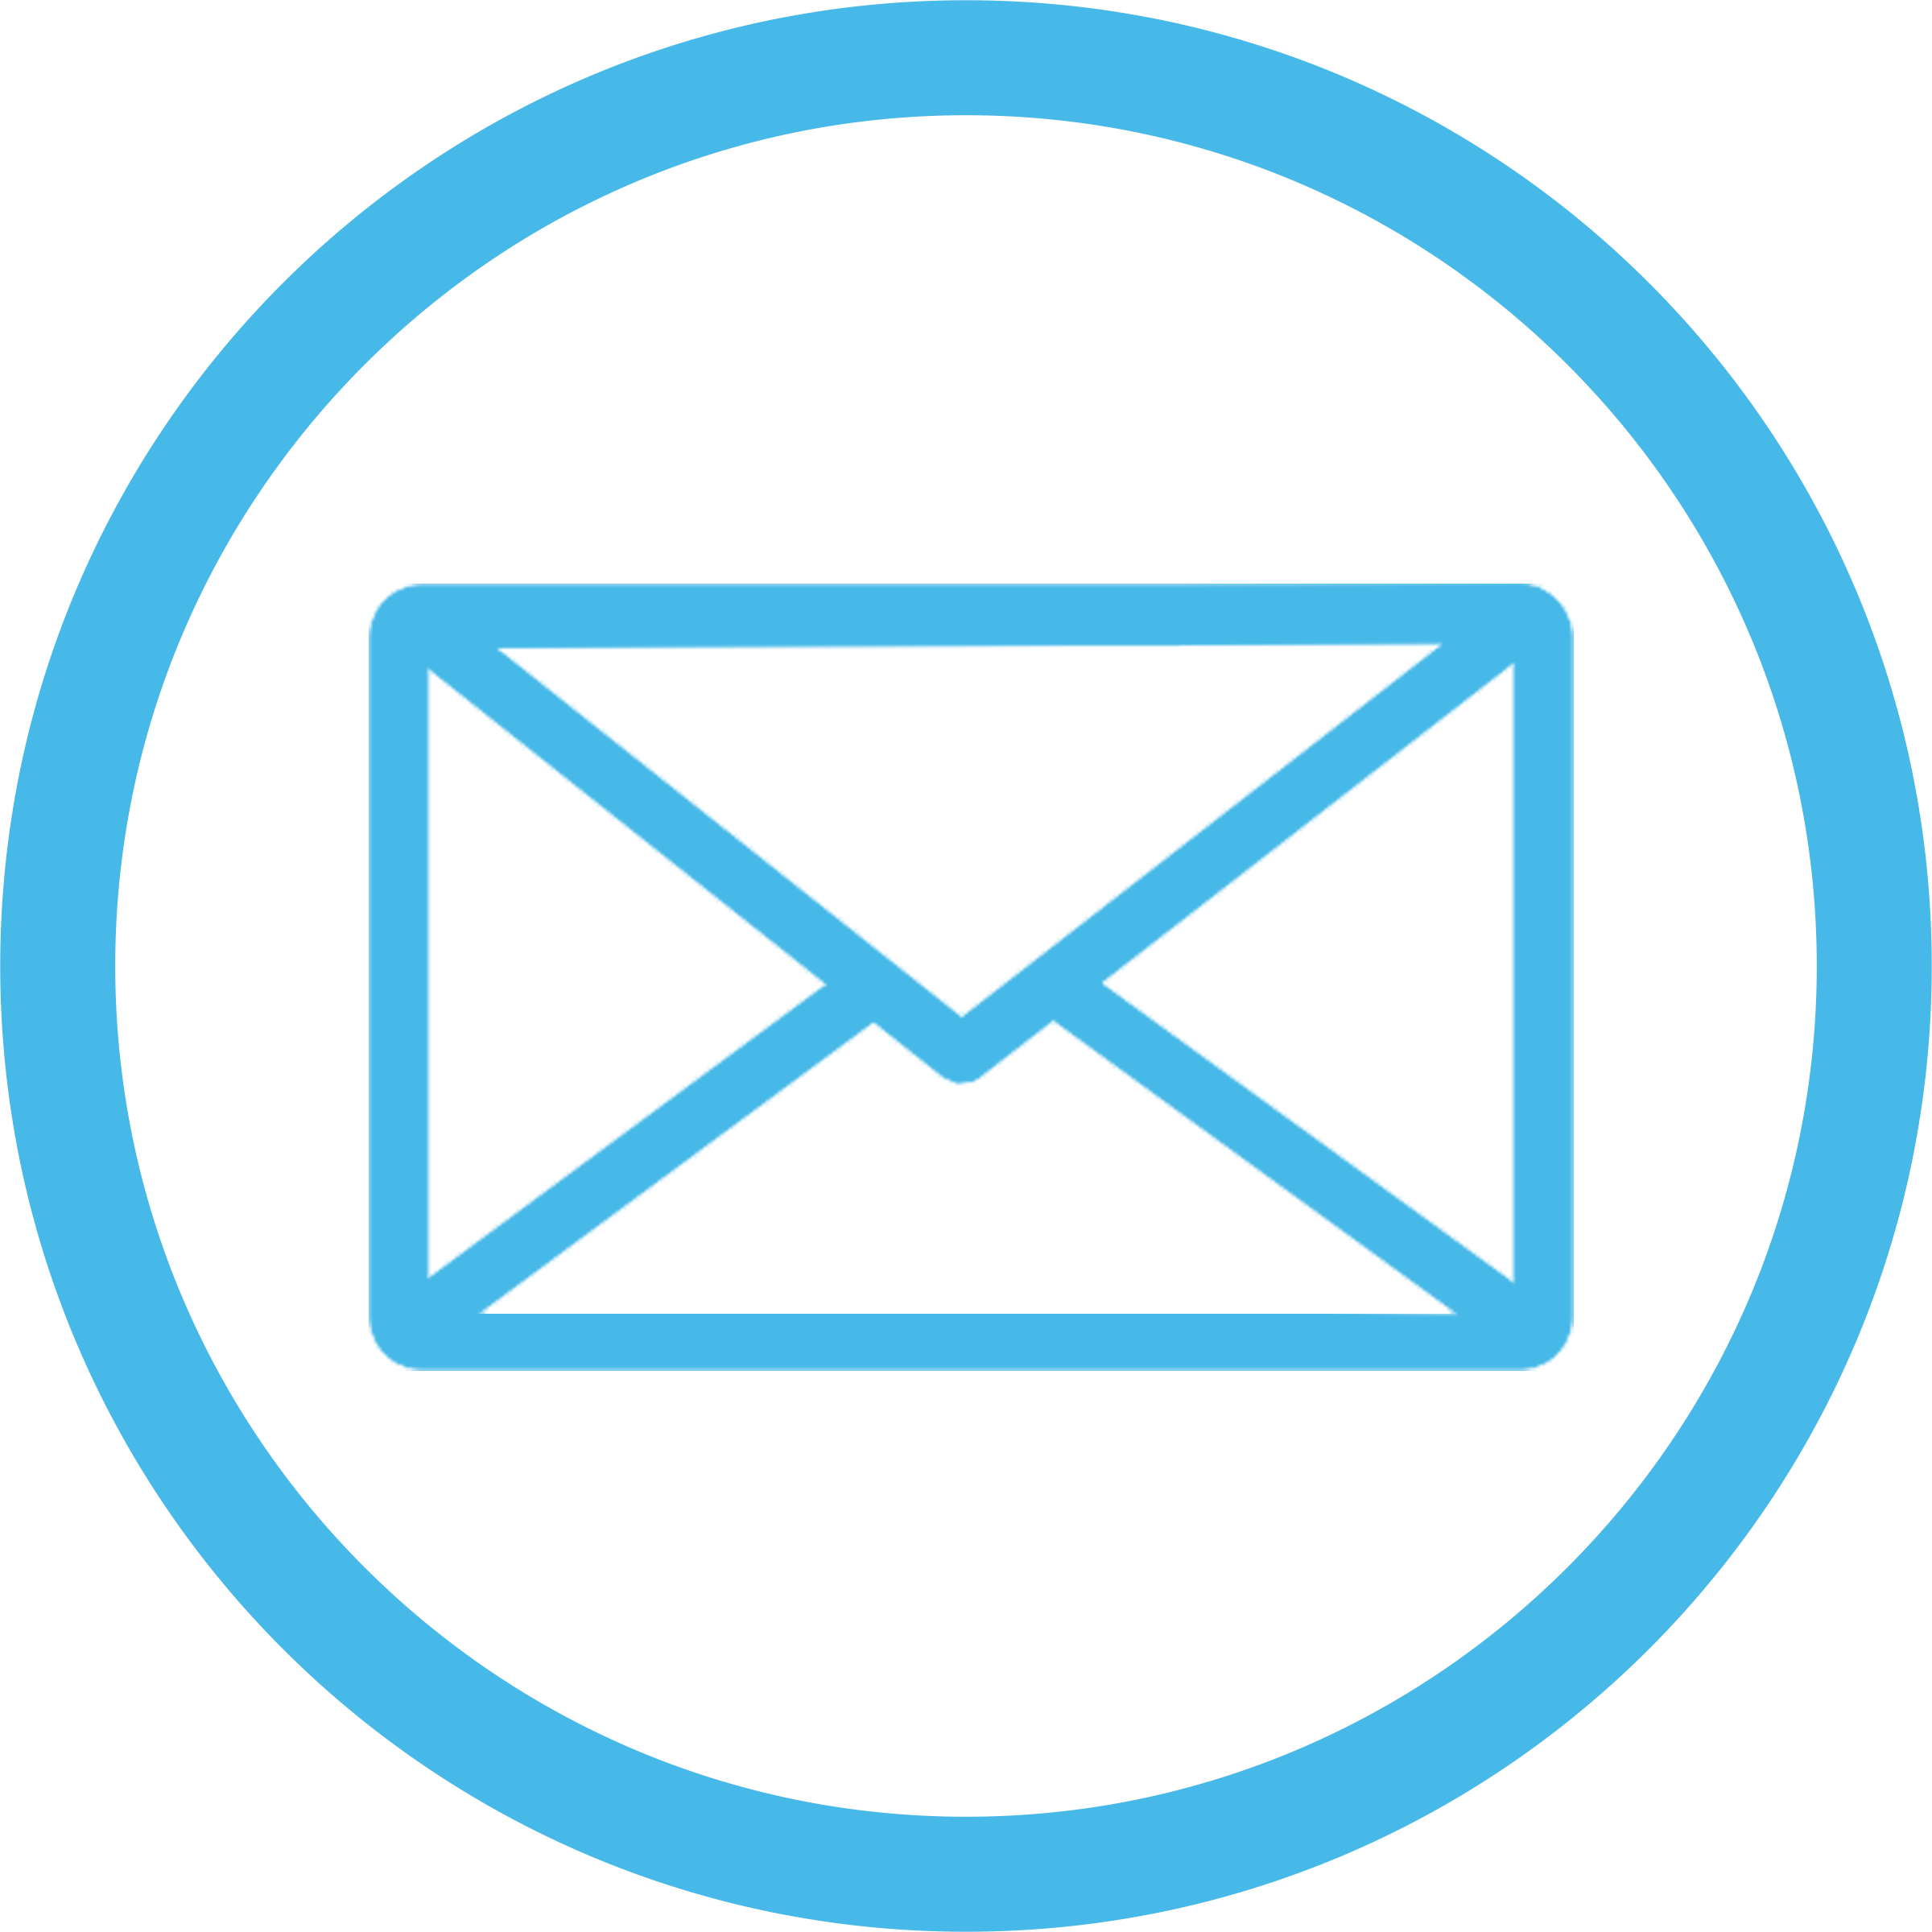 Download Email Vectors Free Icon image #122